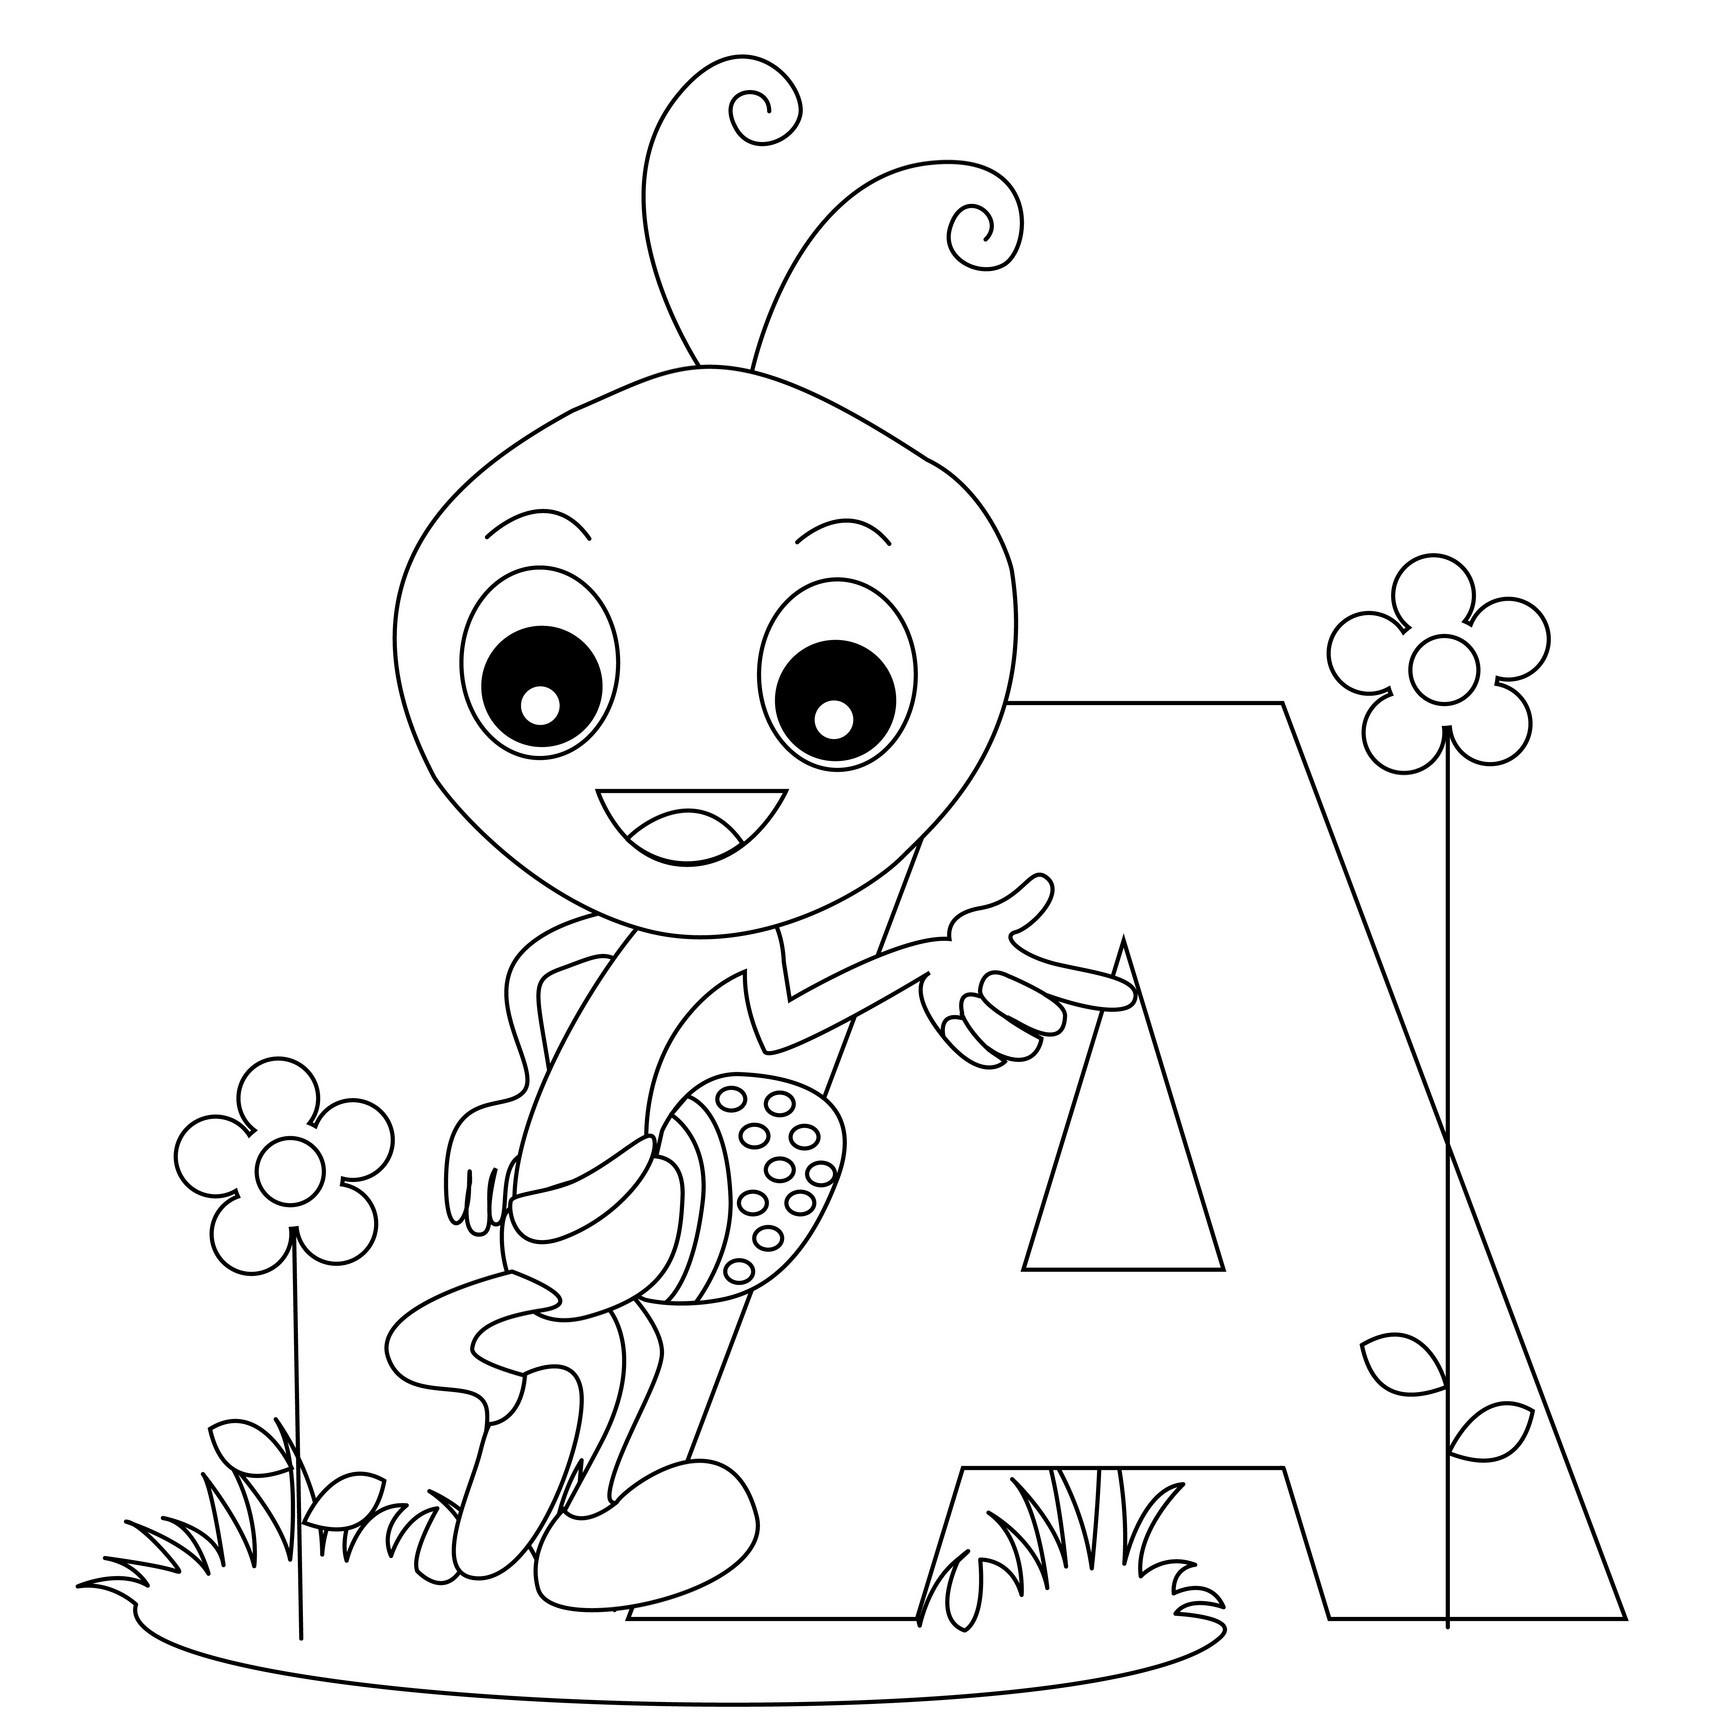 coloring pages of letters - free printable alphabet coloring pages for kids best